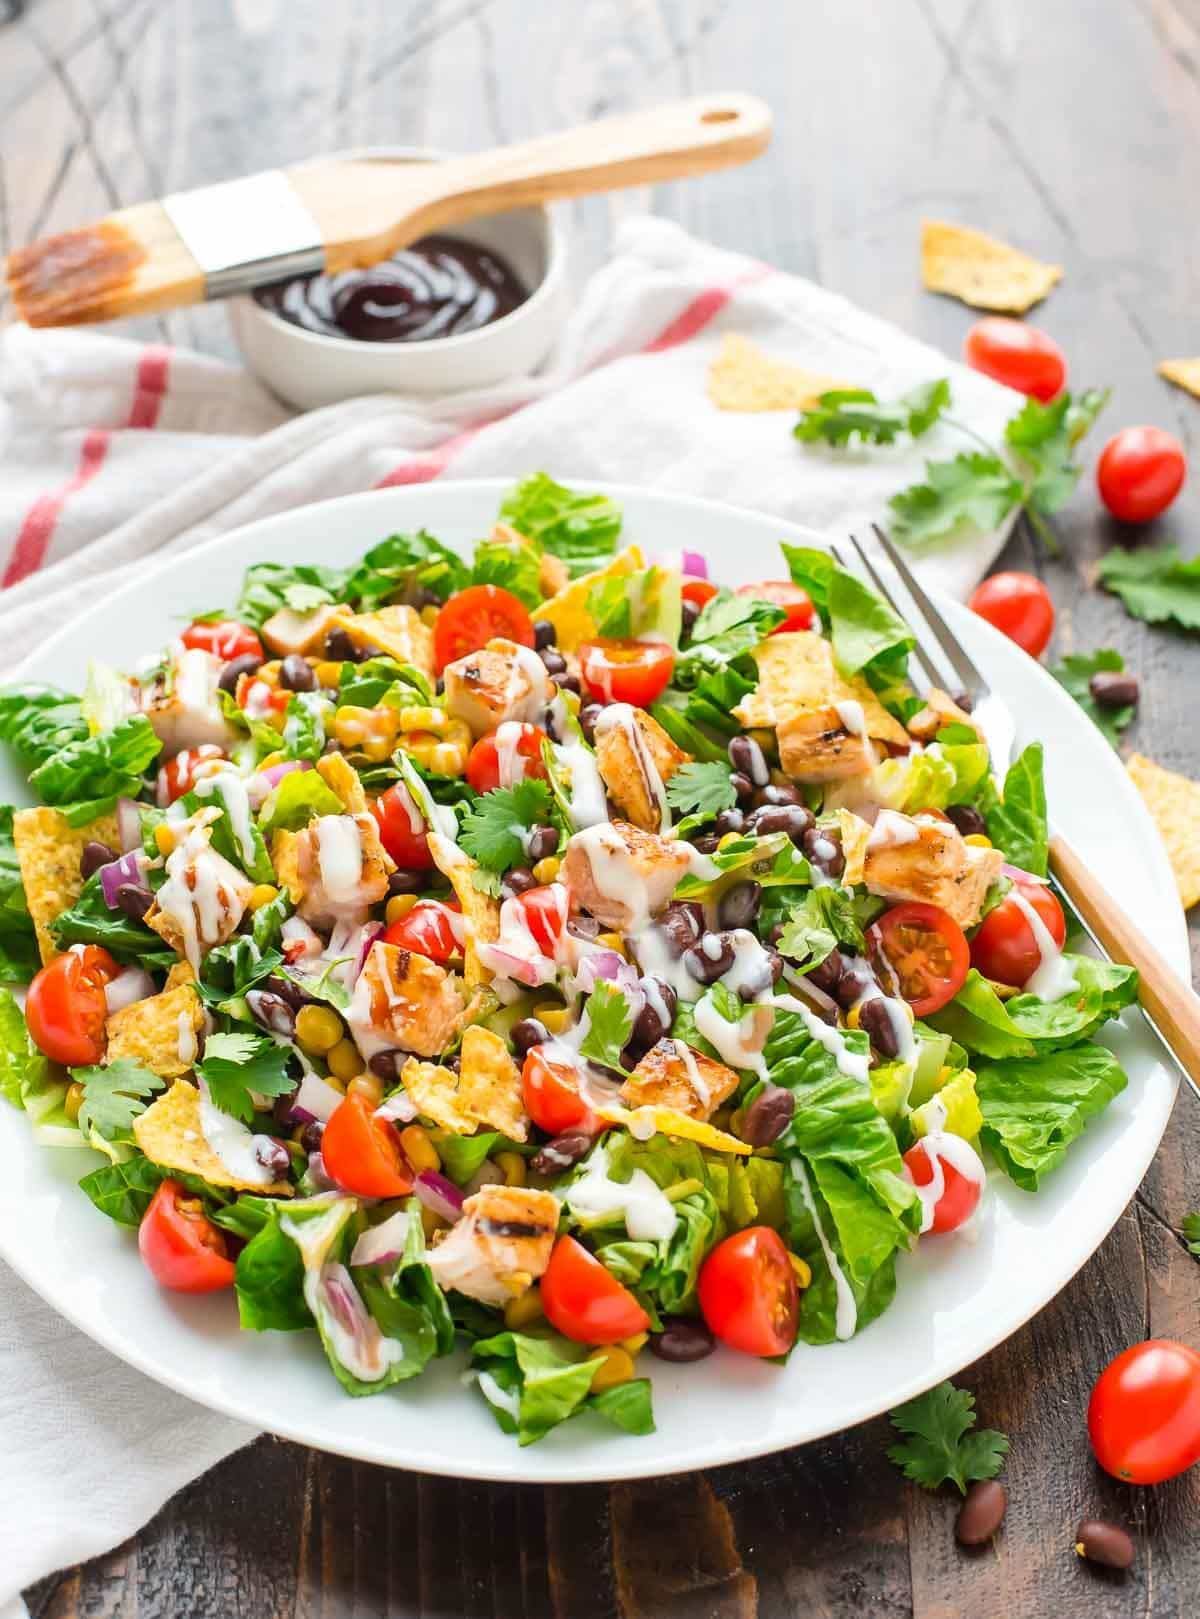 salad chicken bbq recipes loss weight recipe healthy salads diet tortilla ranch fresh chips grilled barbecue breaded panera wellplated greens